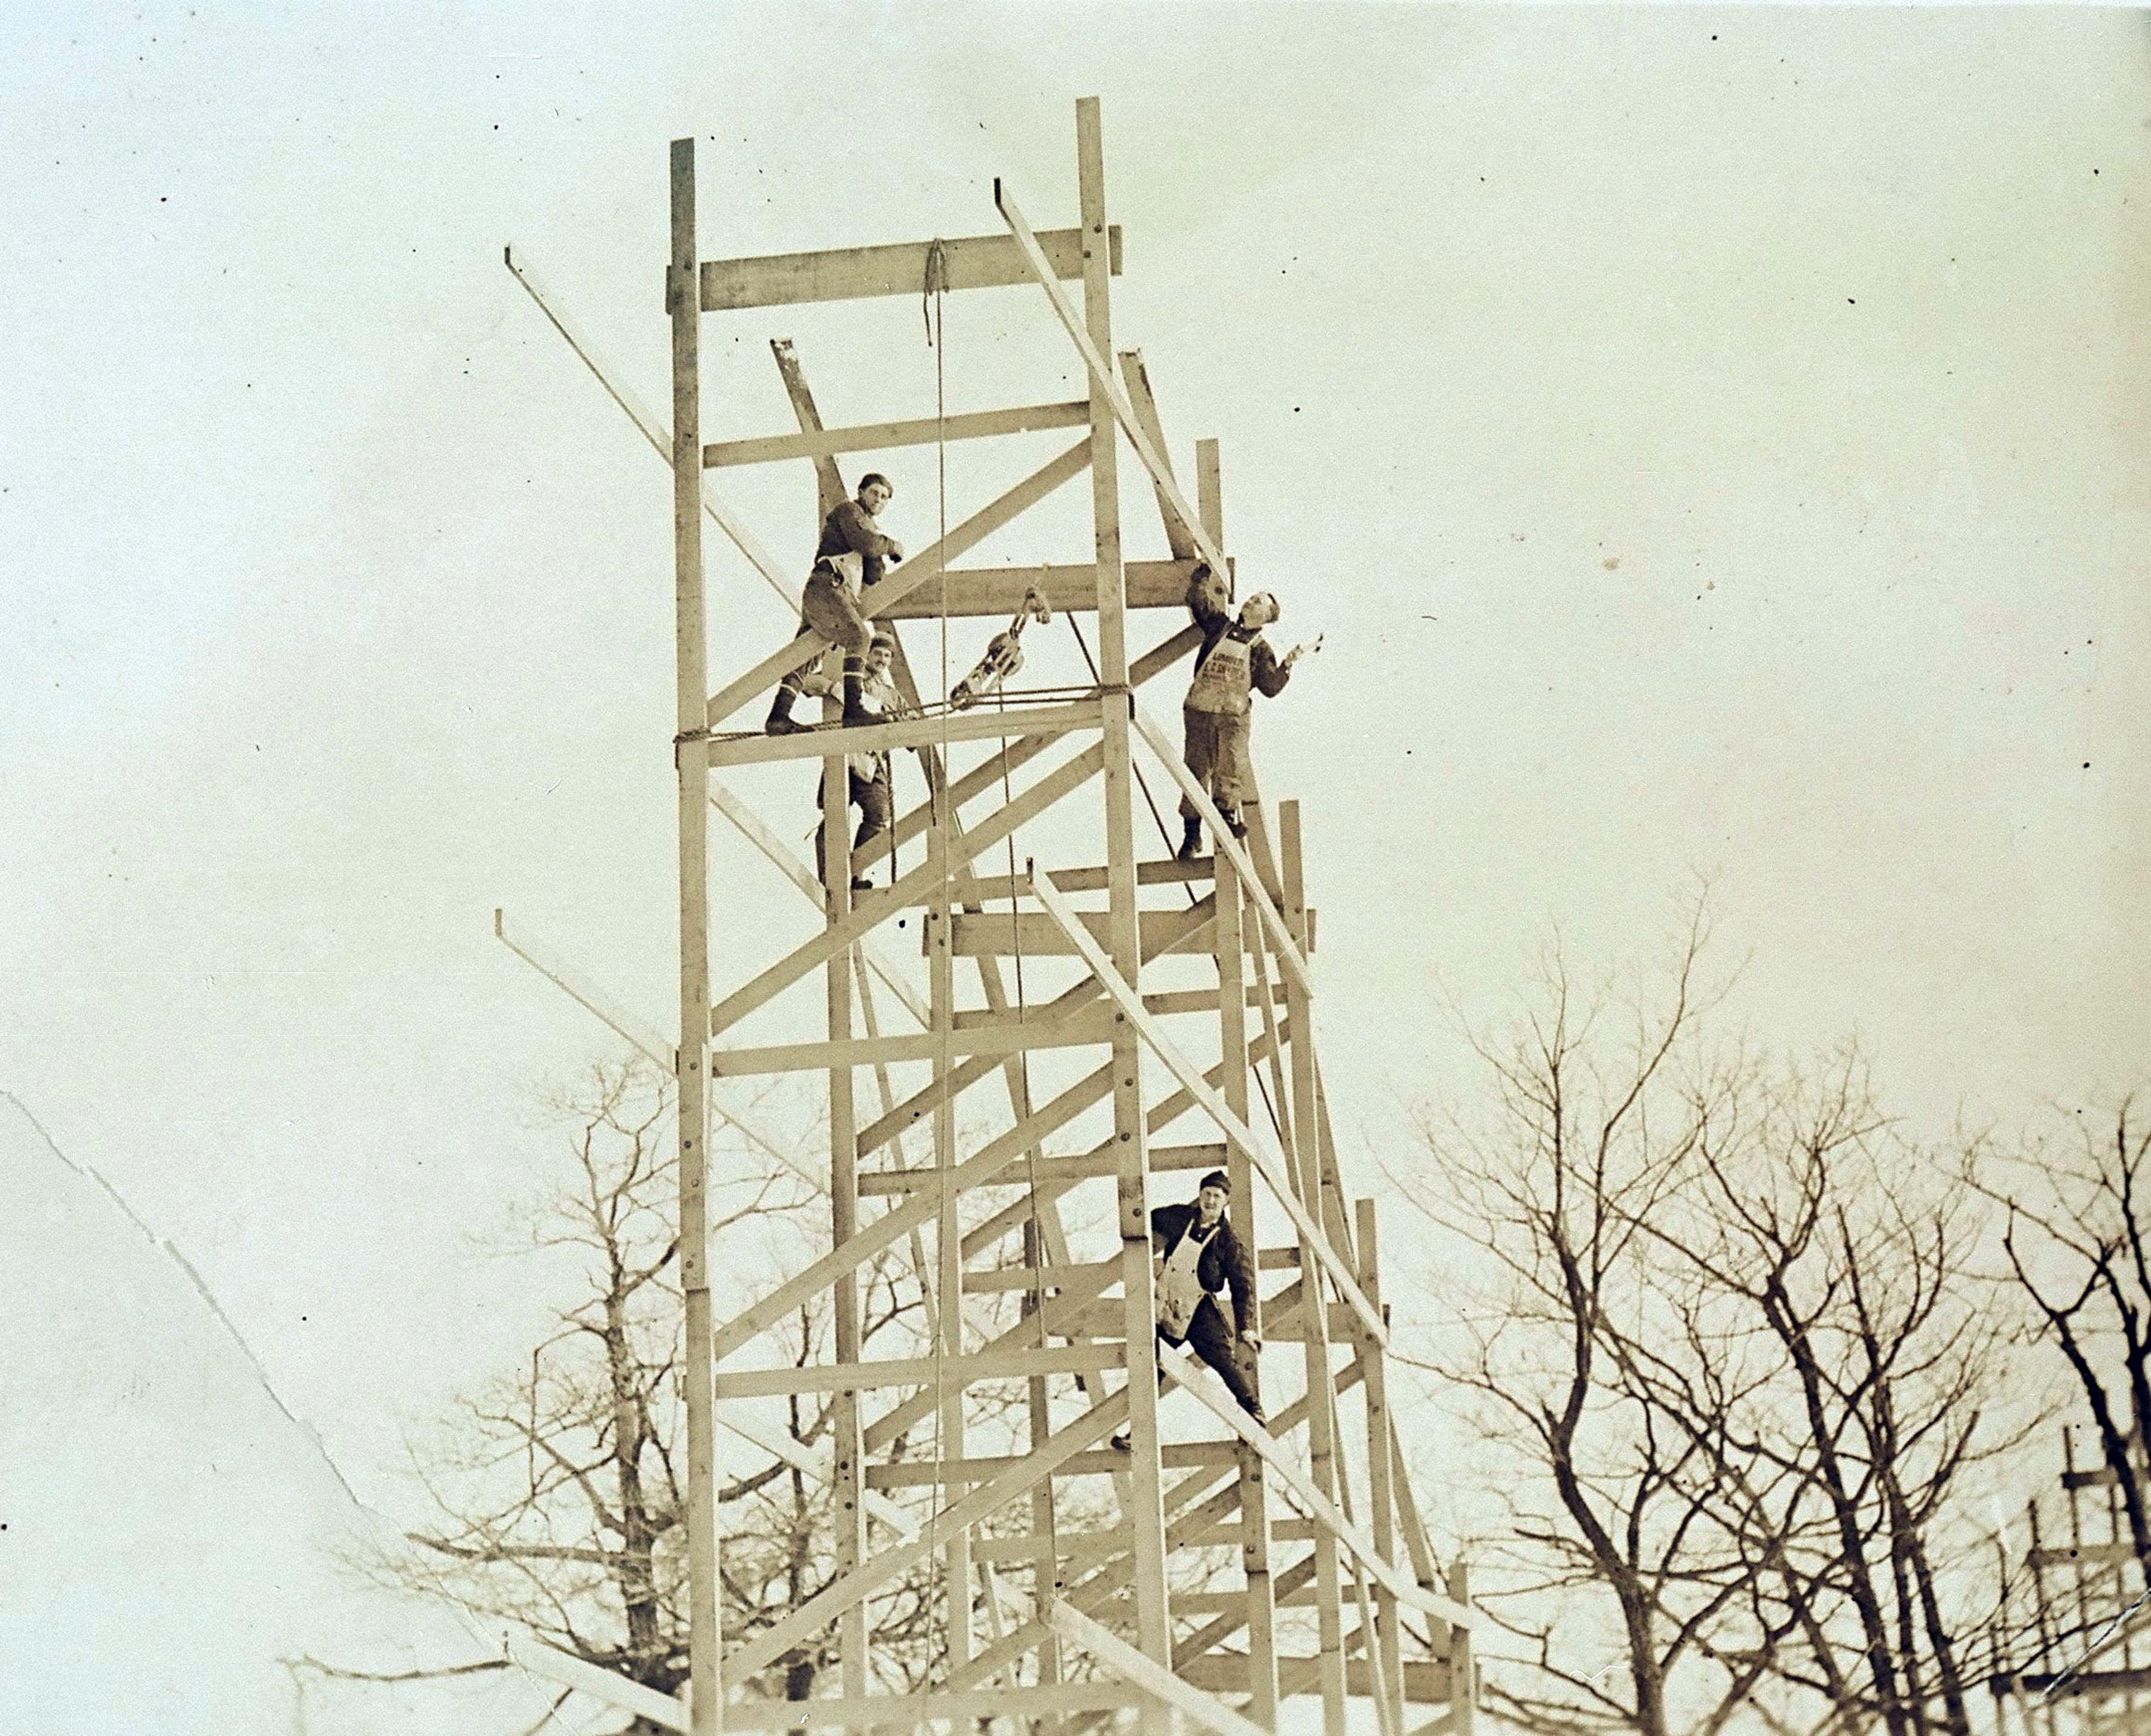 1920s workers assembling a wooden roller coaster hill